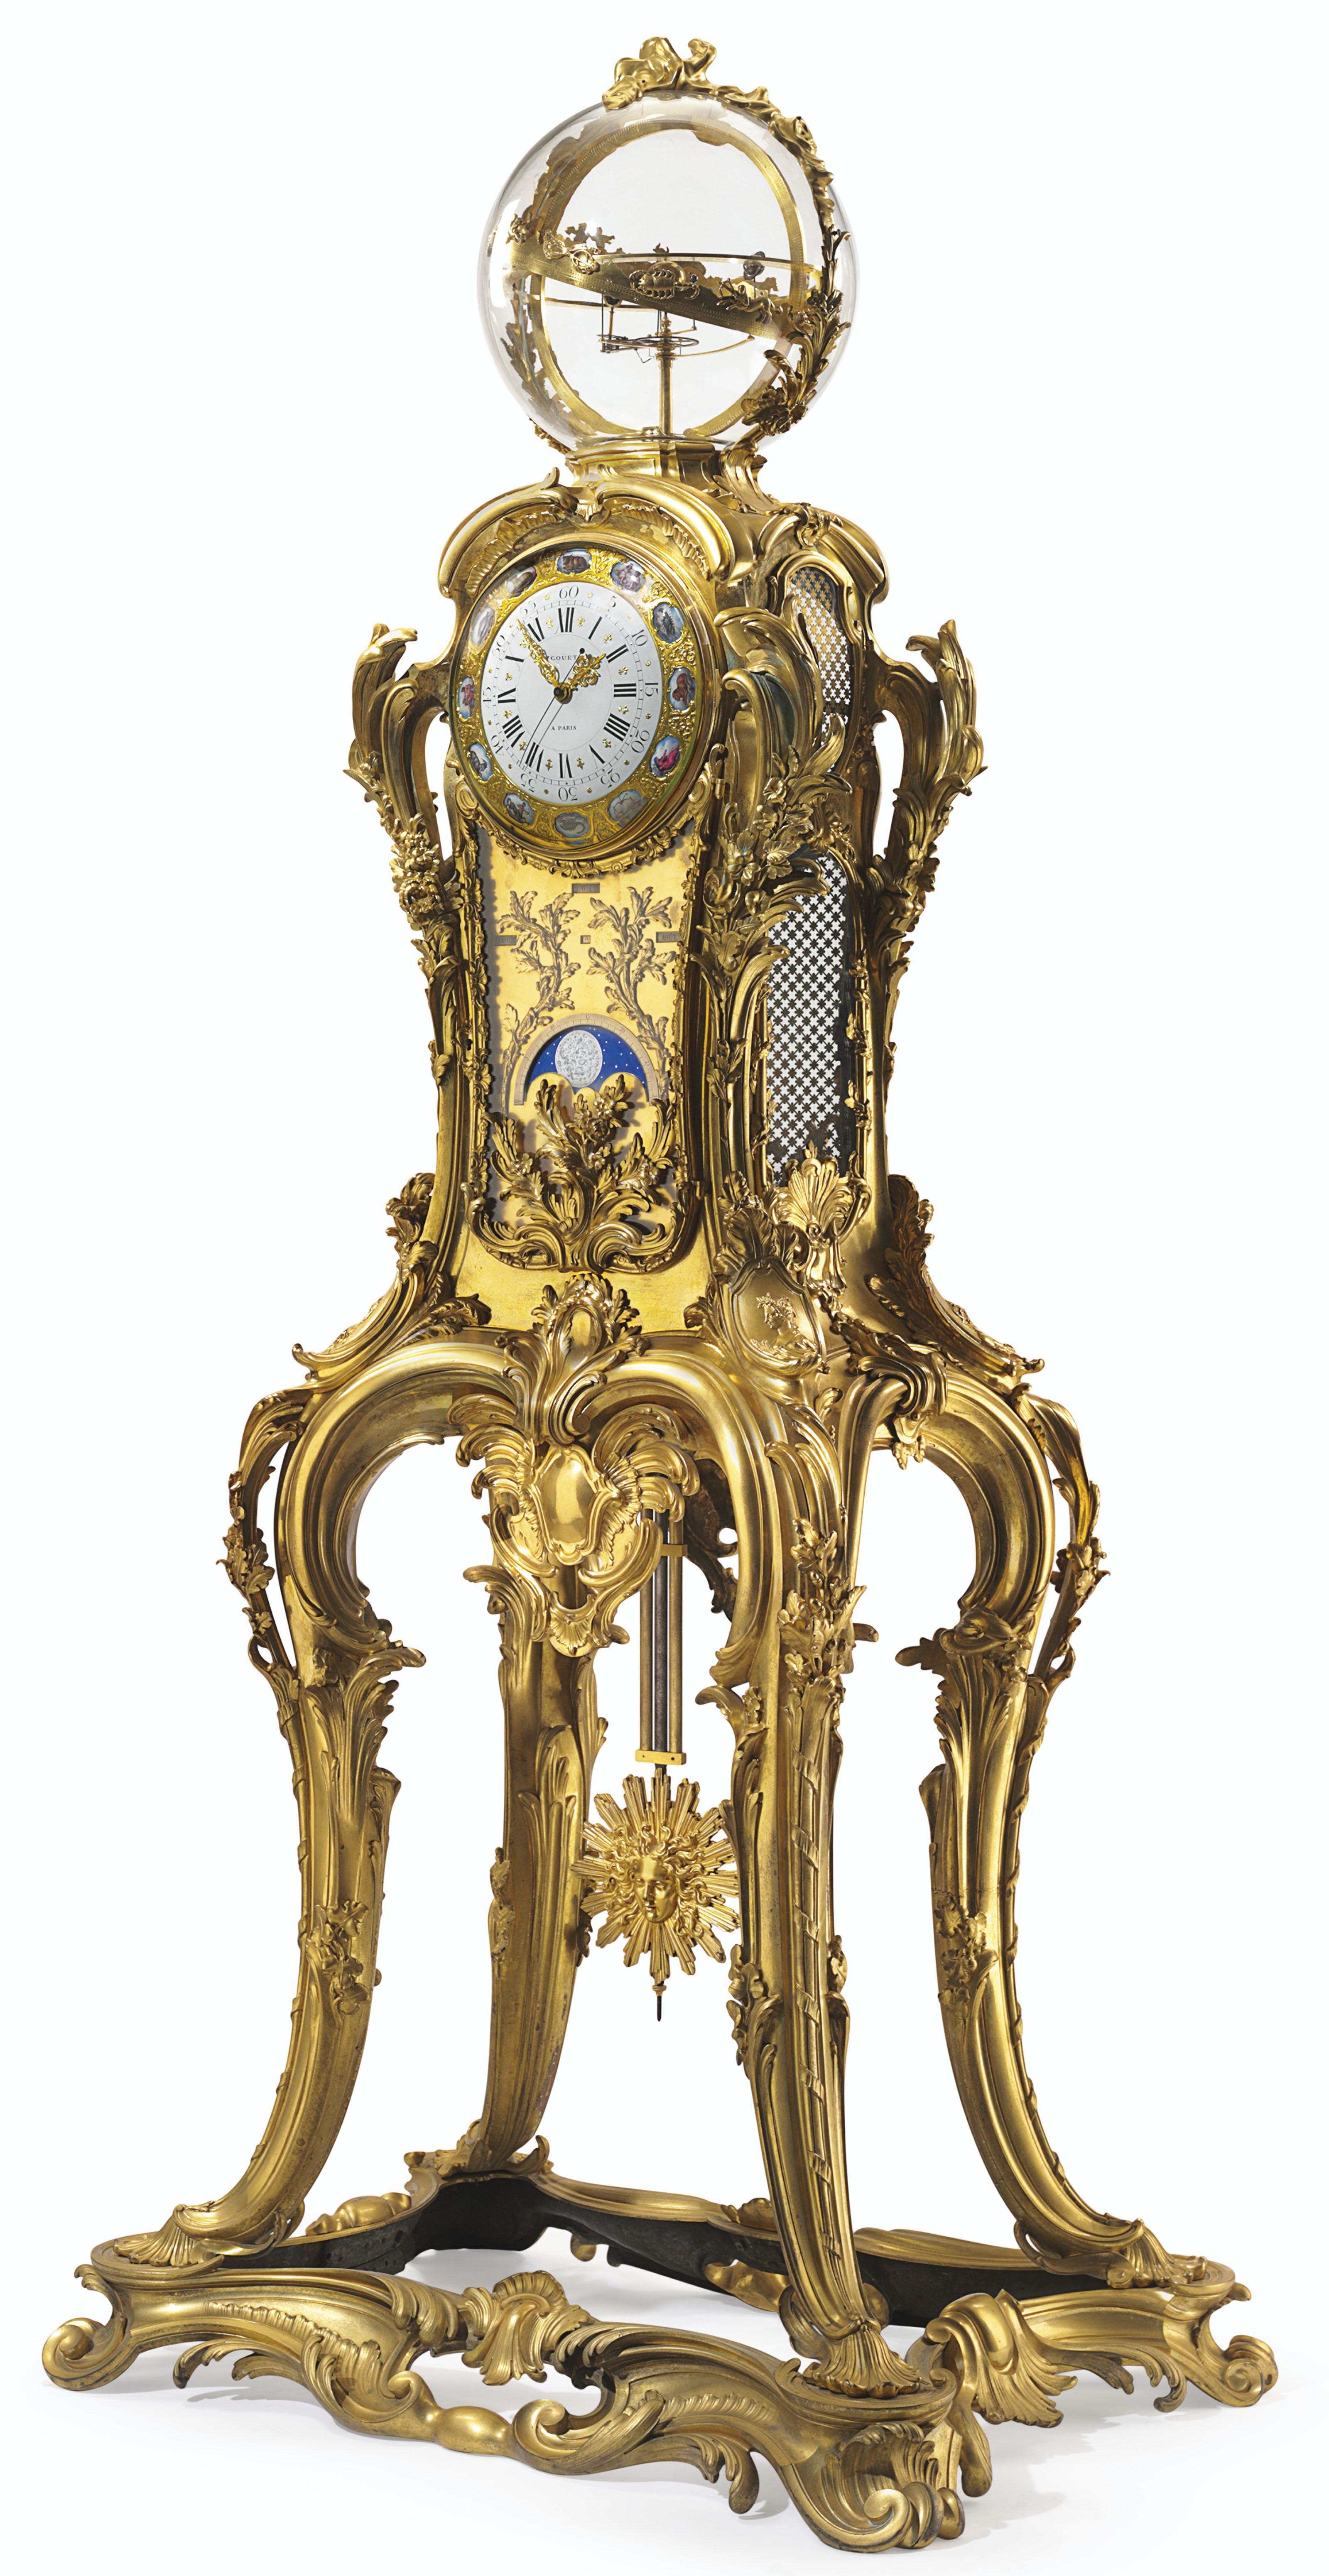 AN IMPORTANT FRENCH ORMOLU AST